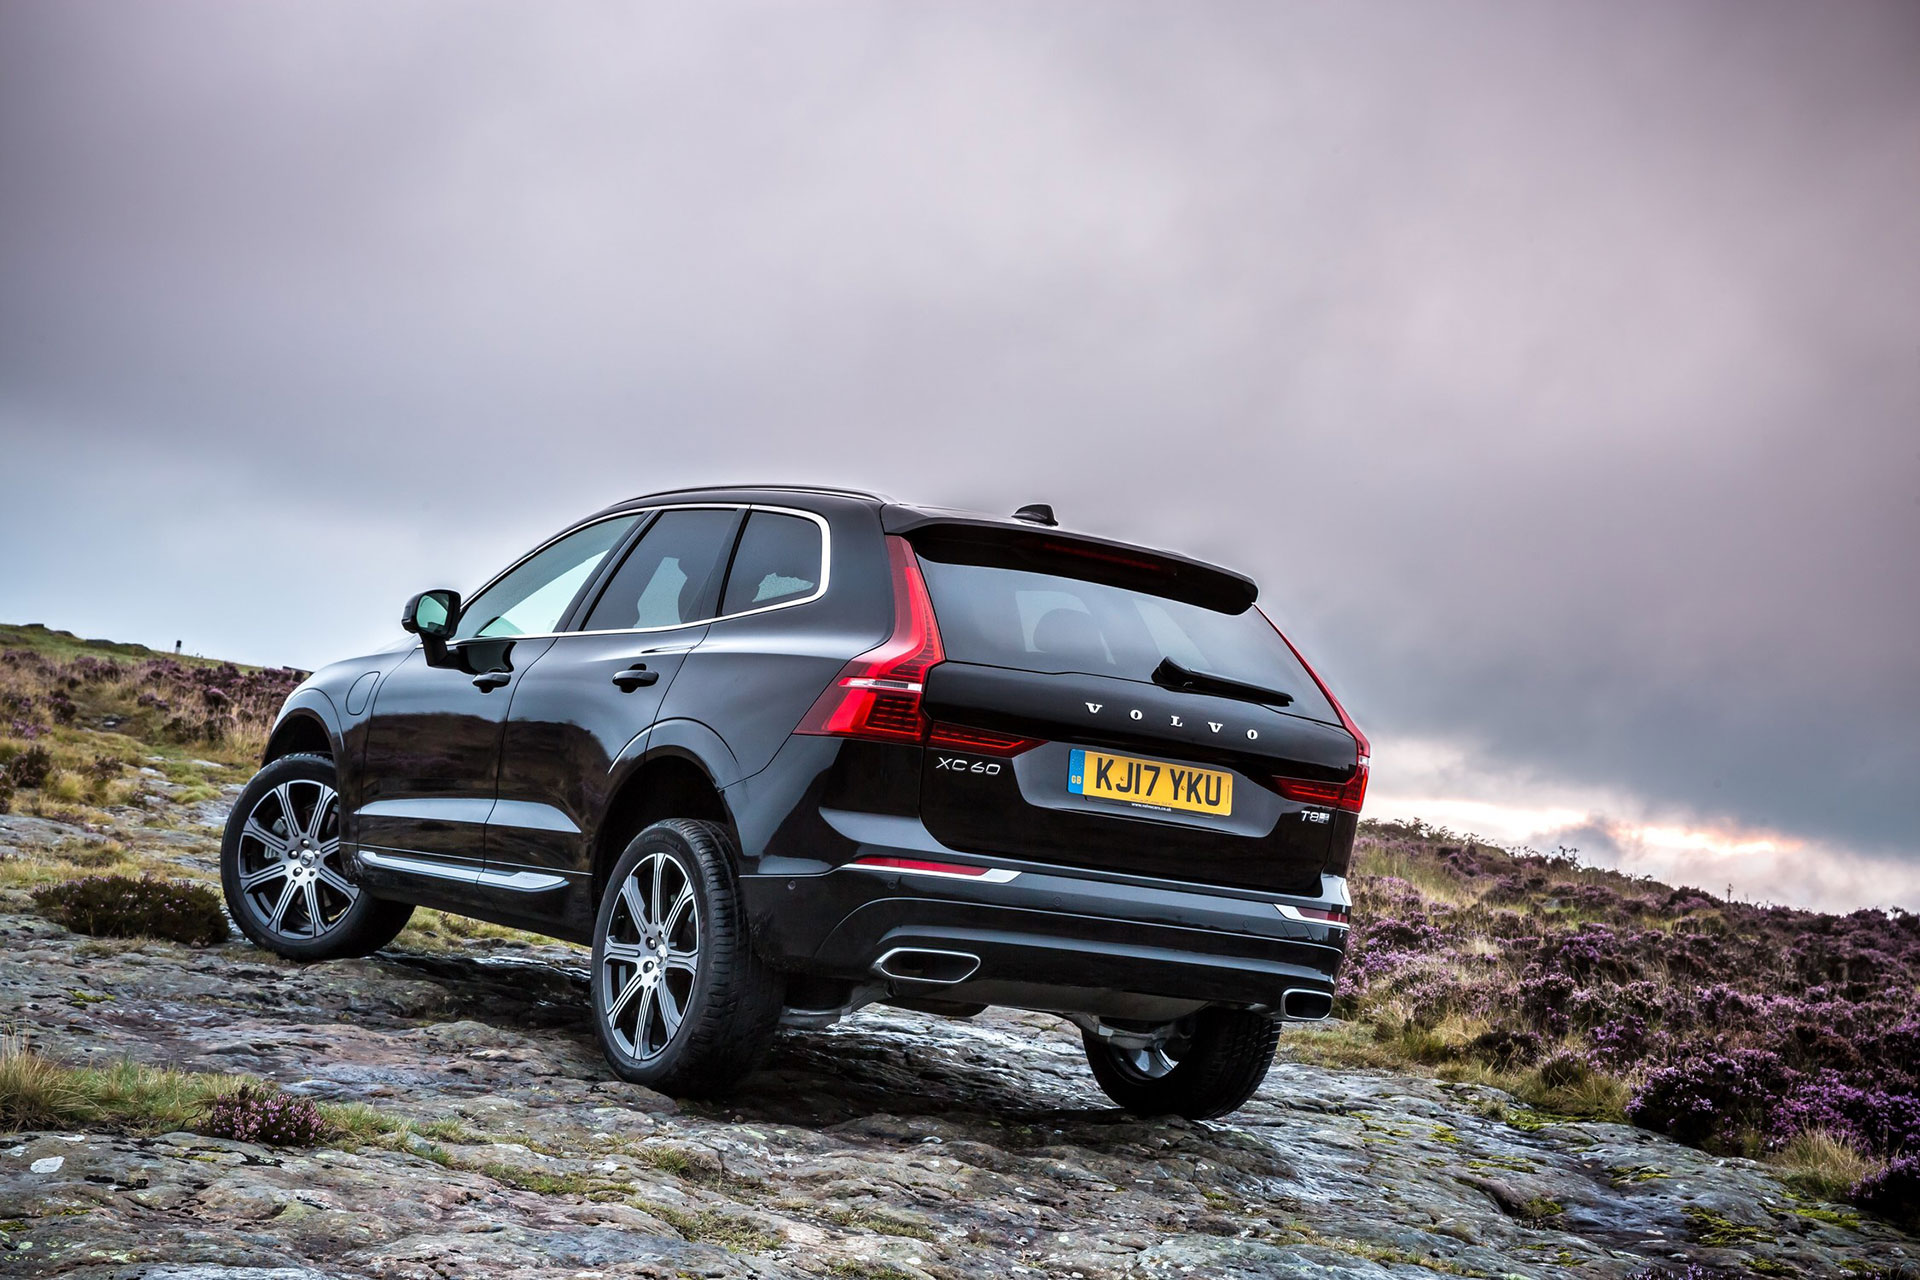 Volvo-XC60-Wins-big-at-awards-Arab-Motor-World-01